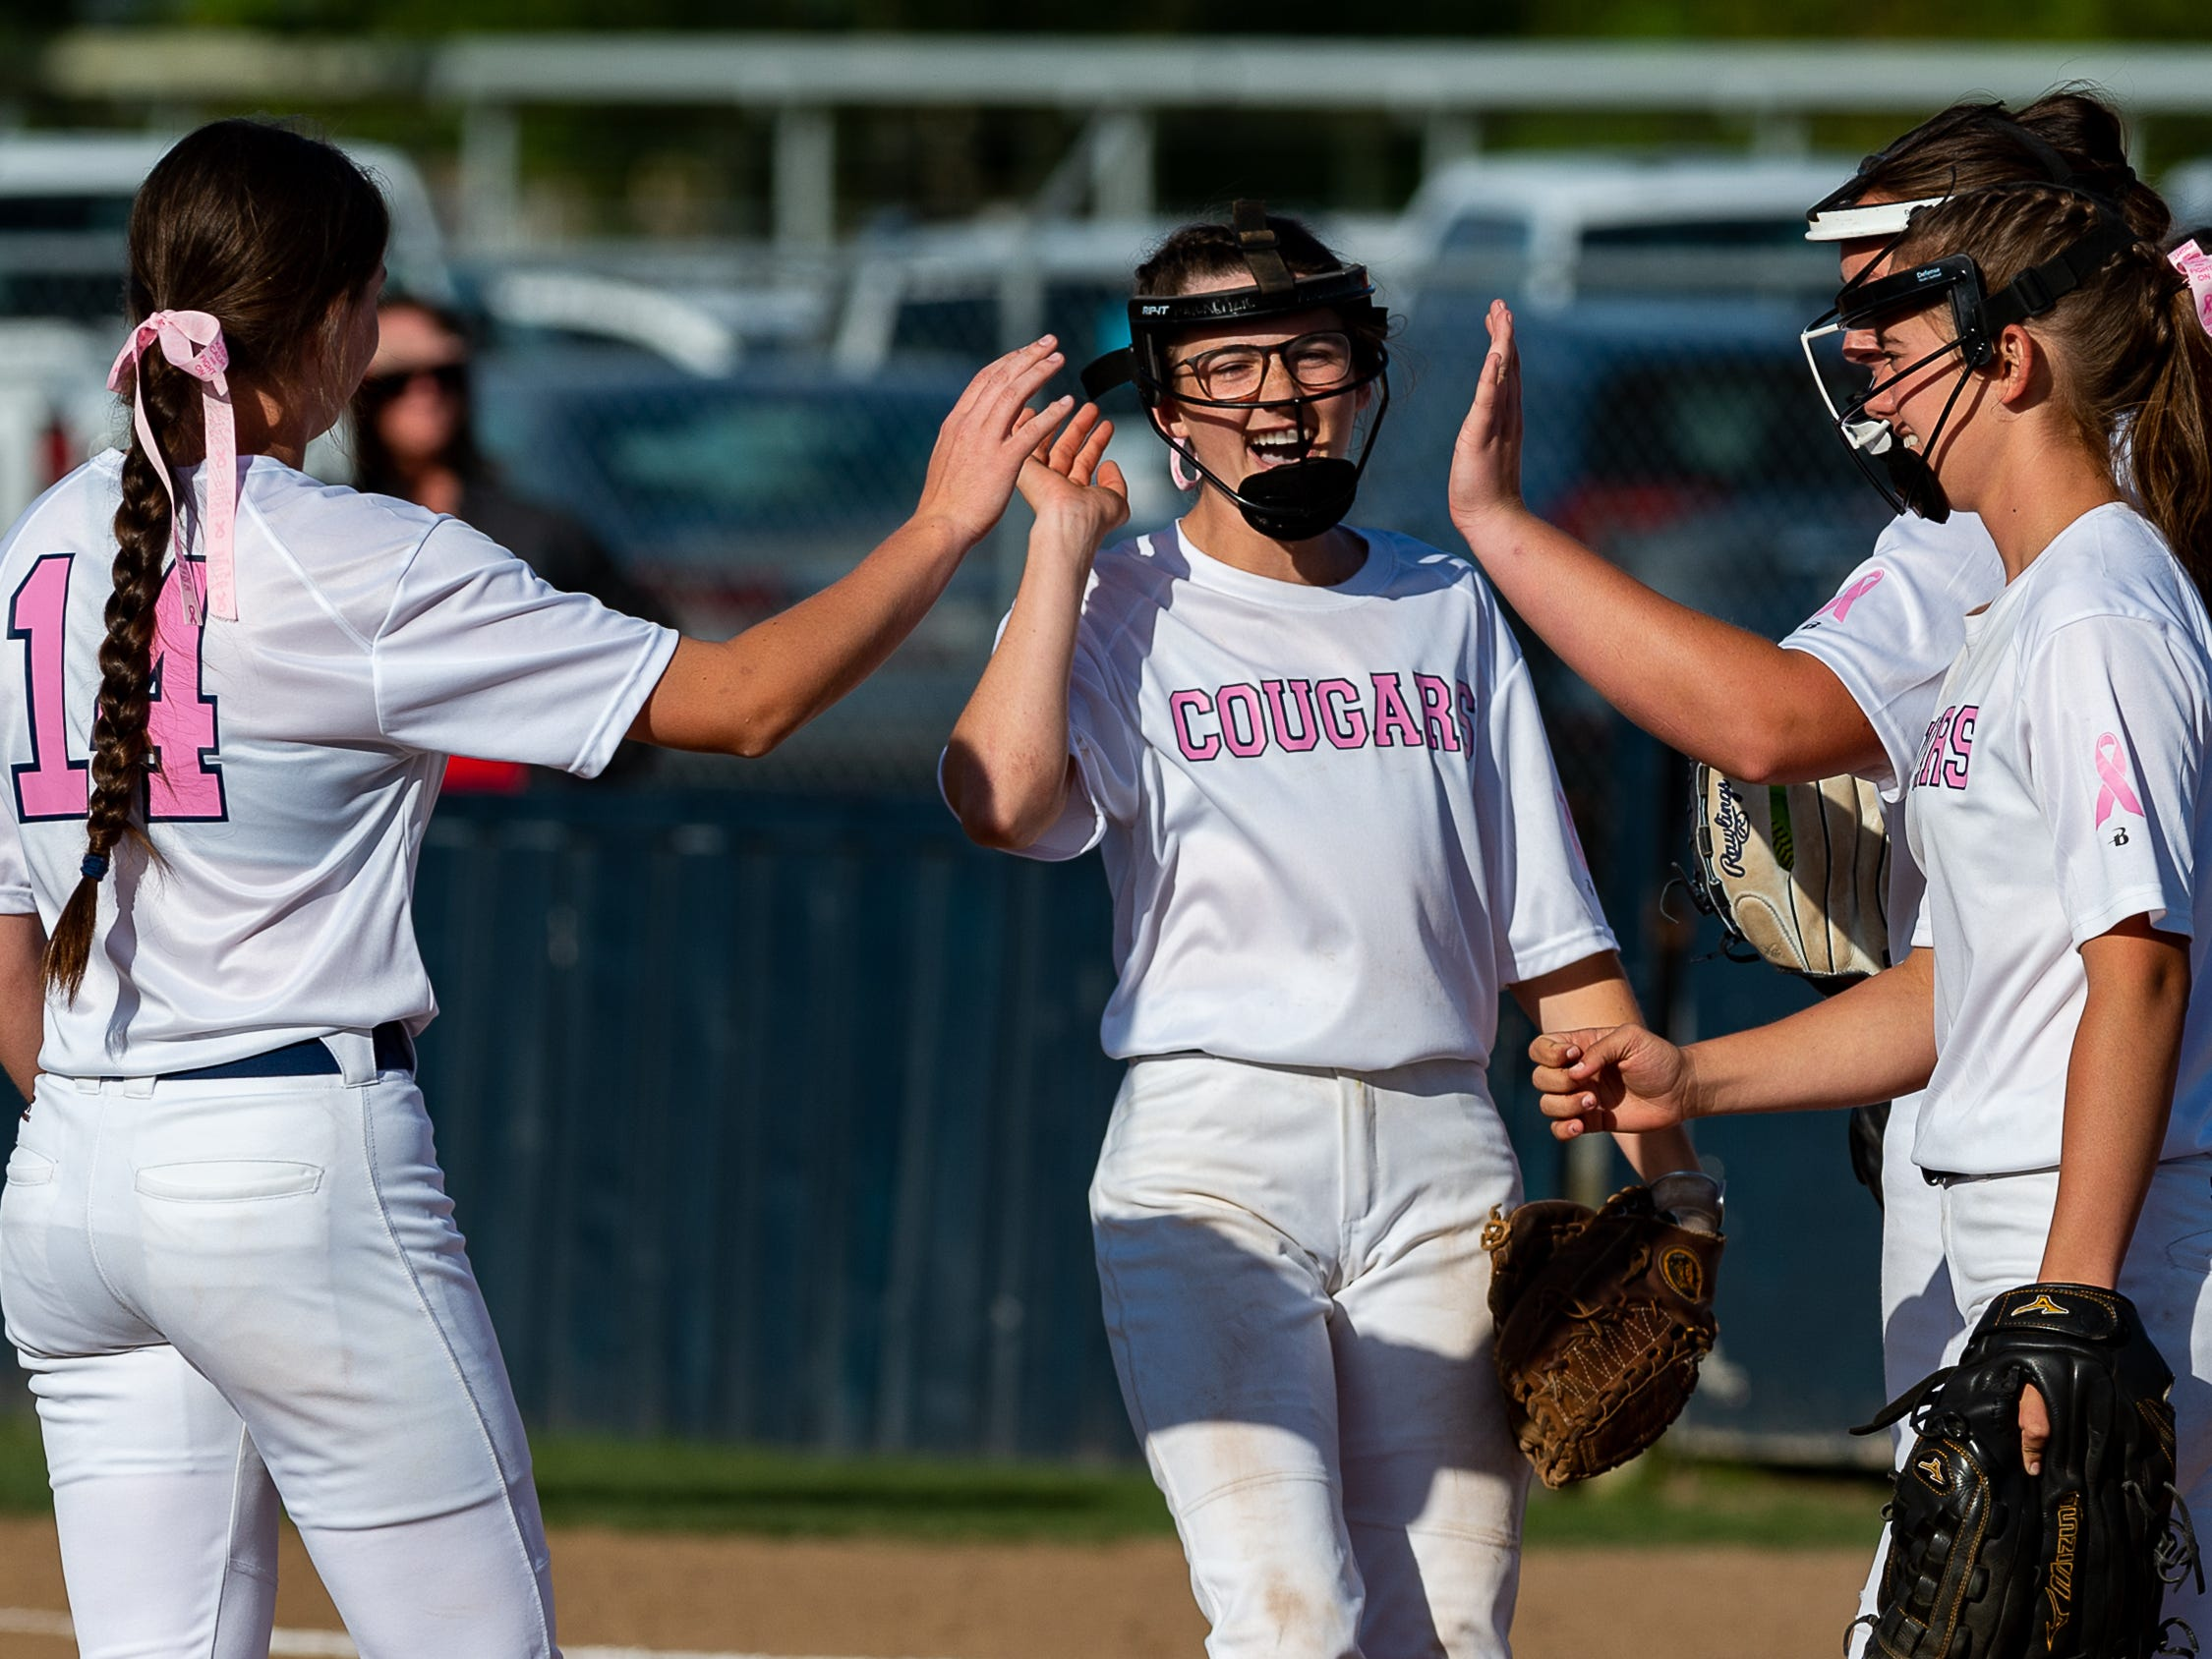 Cougars infielders celebrate as Teurlings Catholic host St Thomas More Softball. Tuesday, April 2, 2019.